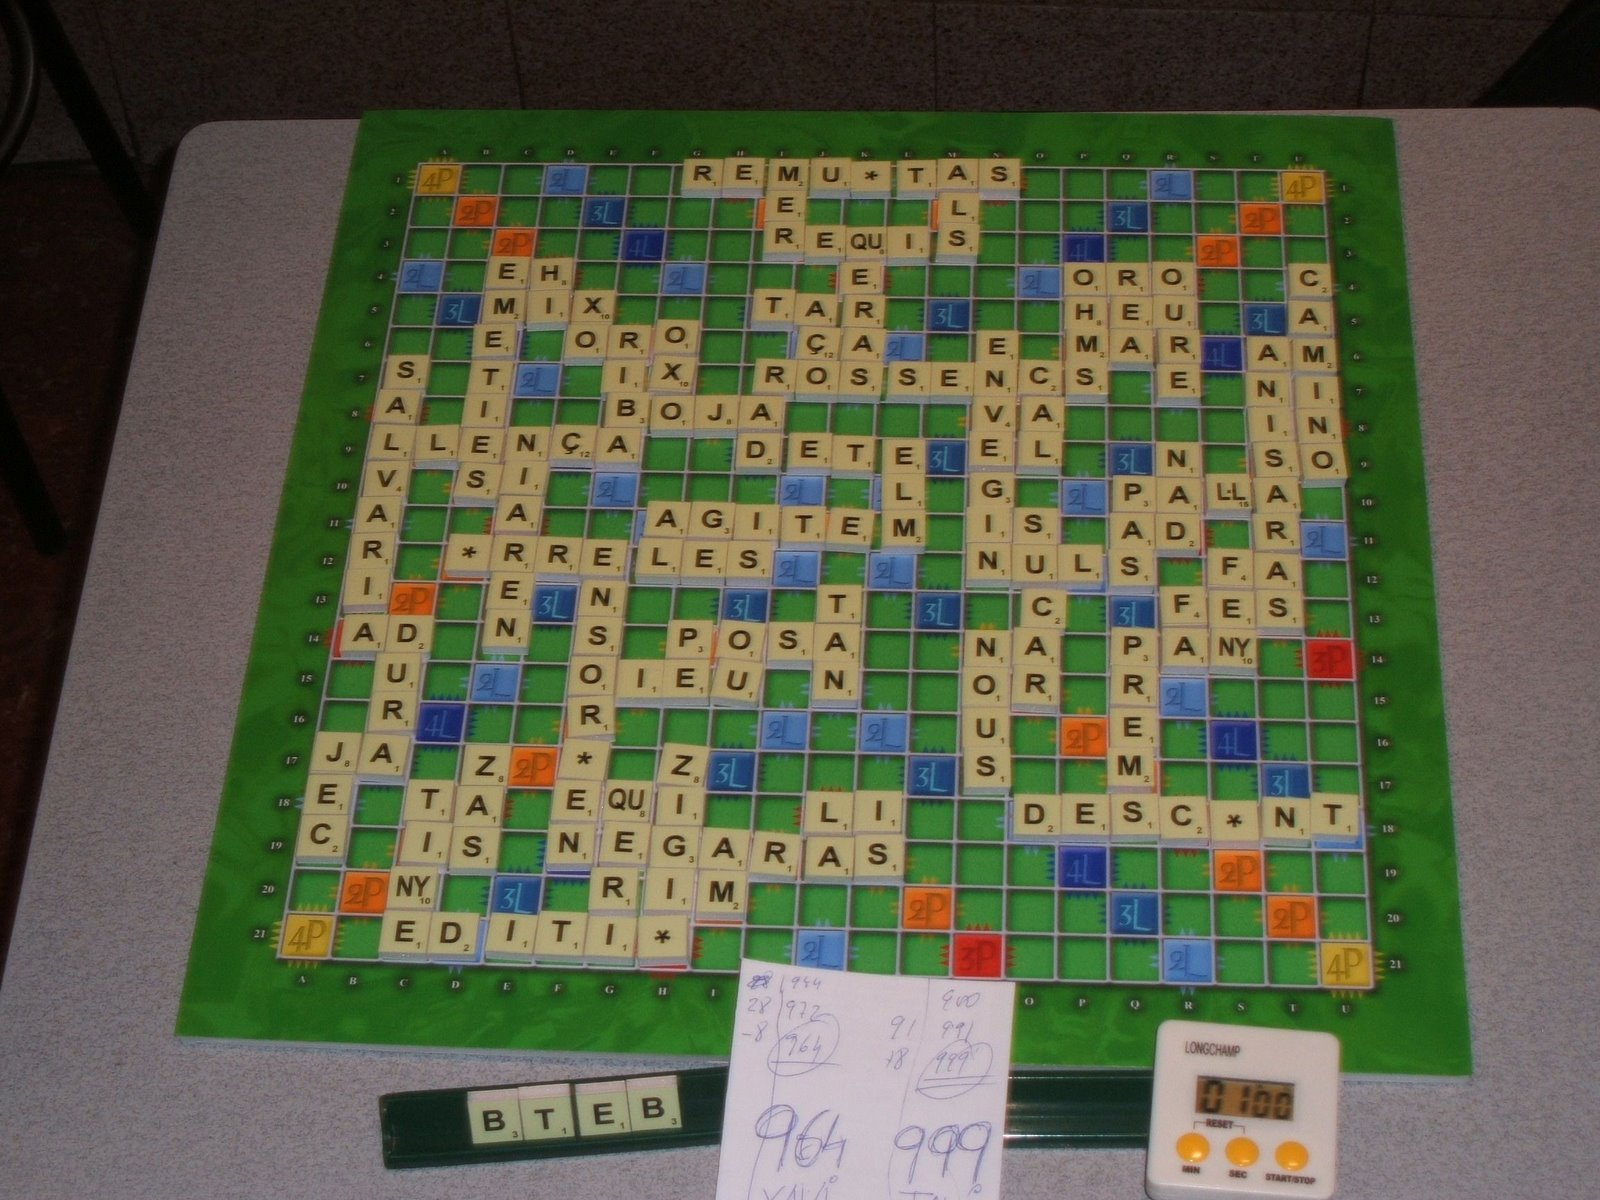 Scrabble online with friends